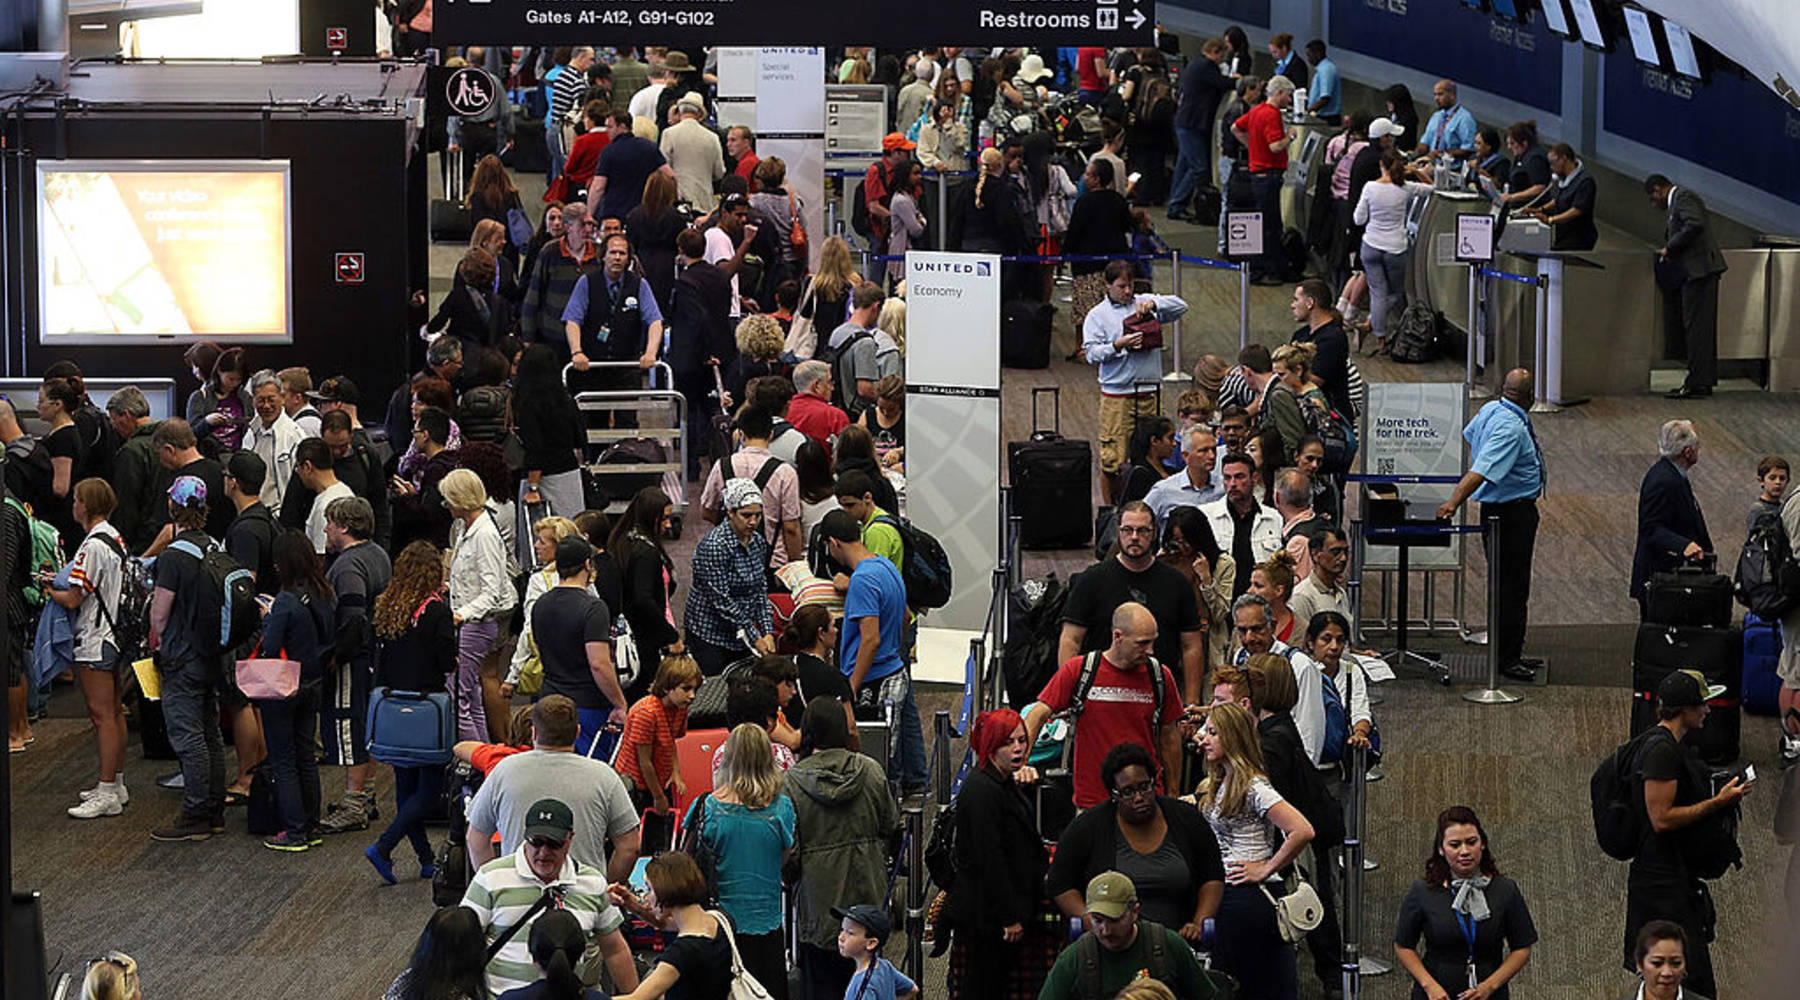 Biometric screening is coming to the airport of the future - Marketplace